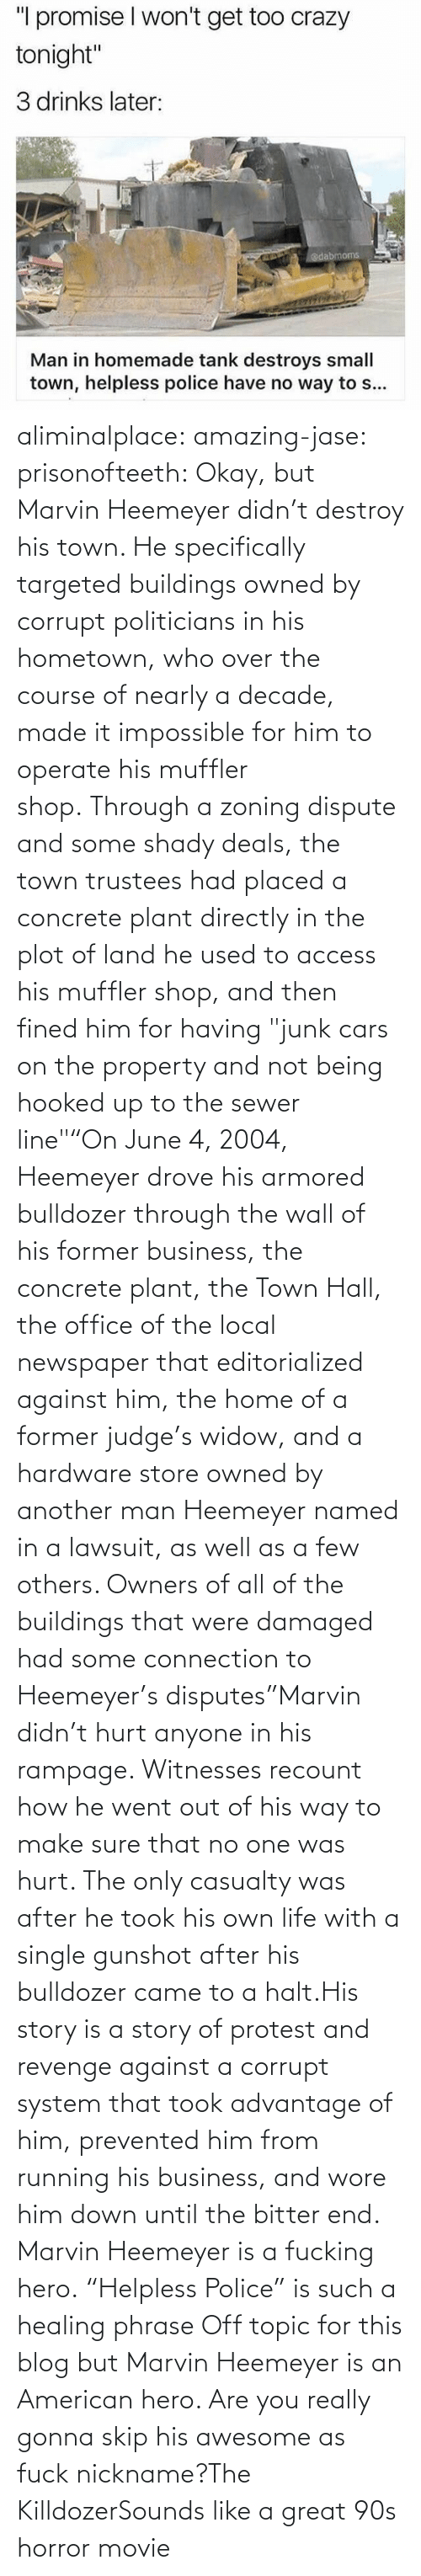 "Revenge: aliminalplace: amazing-jase:  prisonofteeth: Okay, but Marvin Heemeyer didn't destroy his town. He specifically targeted buildings owned by corrupt politicians in his hometown, who over the course of nearly a decade, made it impossible for him to operate his muffler shop. Through a zoning dispute and some shady deals, the town trustees had placed a concrete plant directly in the plot of land he used to access his muffler shop, and then fined him for having ""junk cars on the property and not being hooked up to the sewer line""""On June 4, 2004, Heemeyer drove his armored bulldozer through the wall of his former business, the concrete plant, the Town Hall, the office of the local newspaper that editorialized against him, the home of a former judge's widow, and a hardware store owned by another man Heemeyer named in a lawsuit, as well as a few others. Owners of all of the buildings that were damaged had some connection to Heemeyer's disputes""Marvin didn't hurt anyone in his rampage. Witnesses recount how he went out of his way to make sure that no one was hurt. The only casualty was after he took his own life with a single gunshot after his bulldozer came to a halt.His story is a story of protest and revenge against a corrupt system that took advantage of him, prevented him from running his business, and wore him down until the bitter end. Marvin Heemeyer is a fucking hero. ""Helpless Police"" is such a healing phrase    Off topic for this blog but Marvin Heemeyer is an American hero.     Are you really gonna skip his awesome as fuck nickname?The KilldozerSounds like a great 90s horror movie"